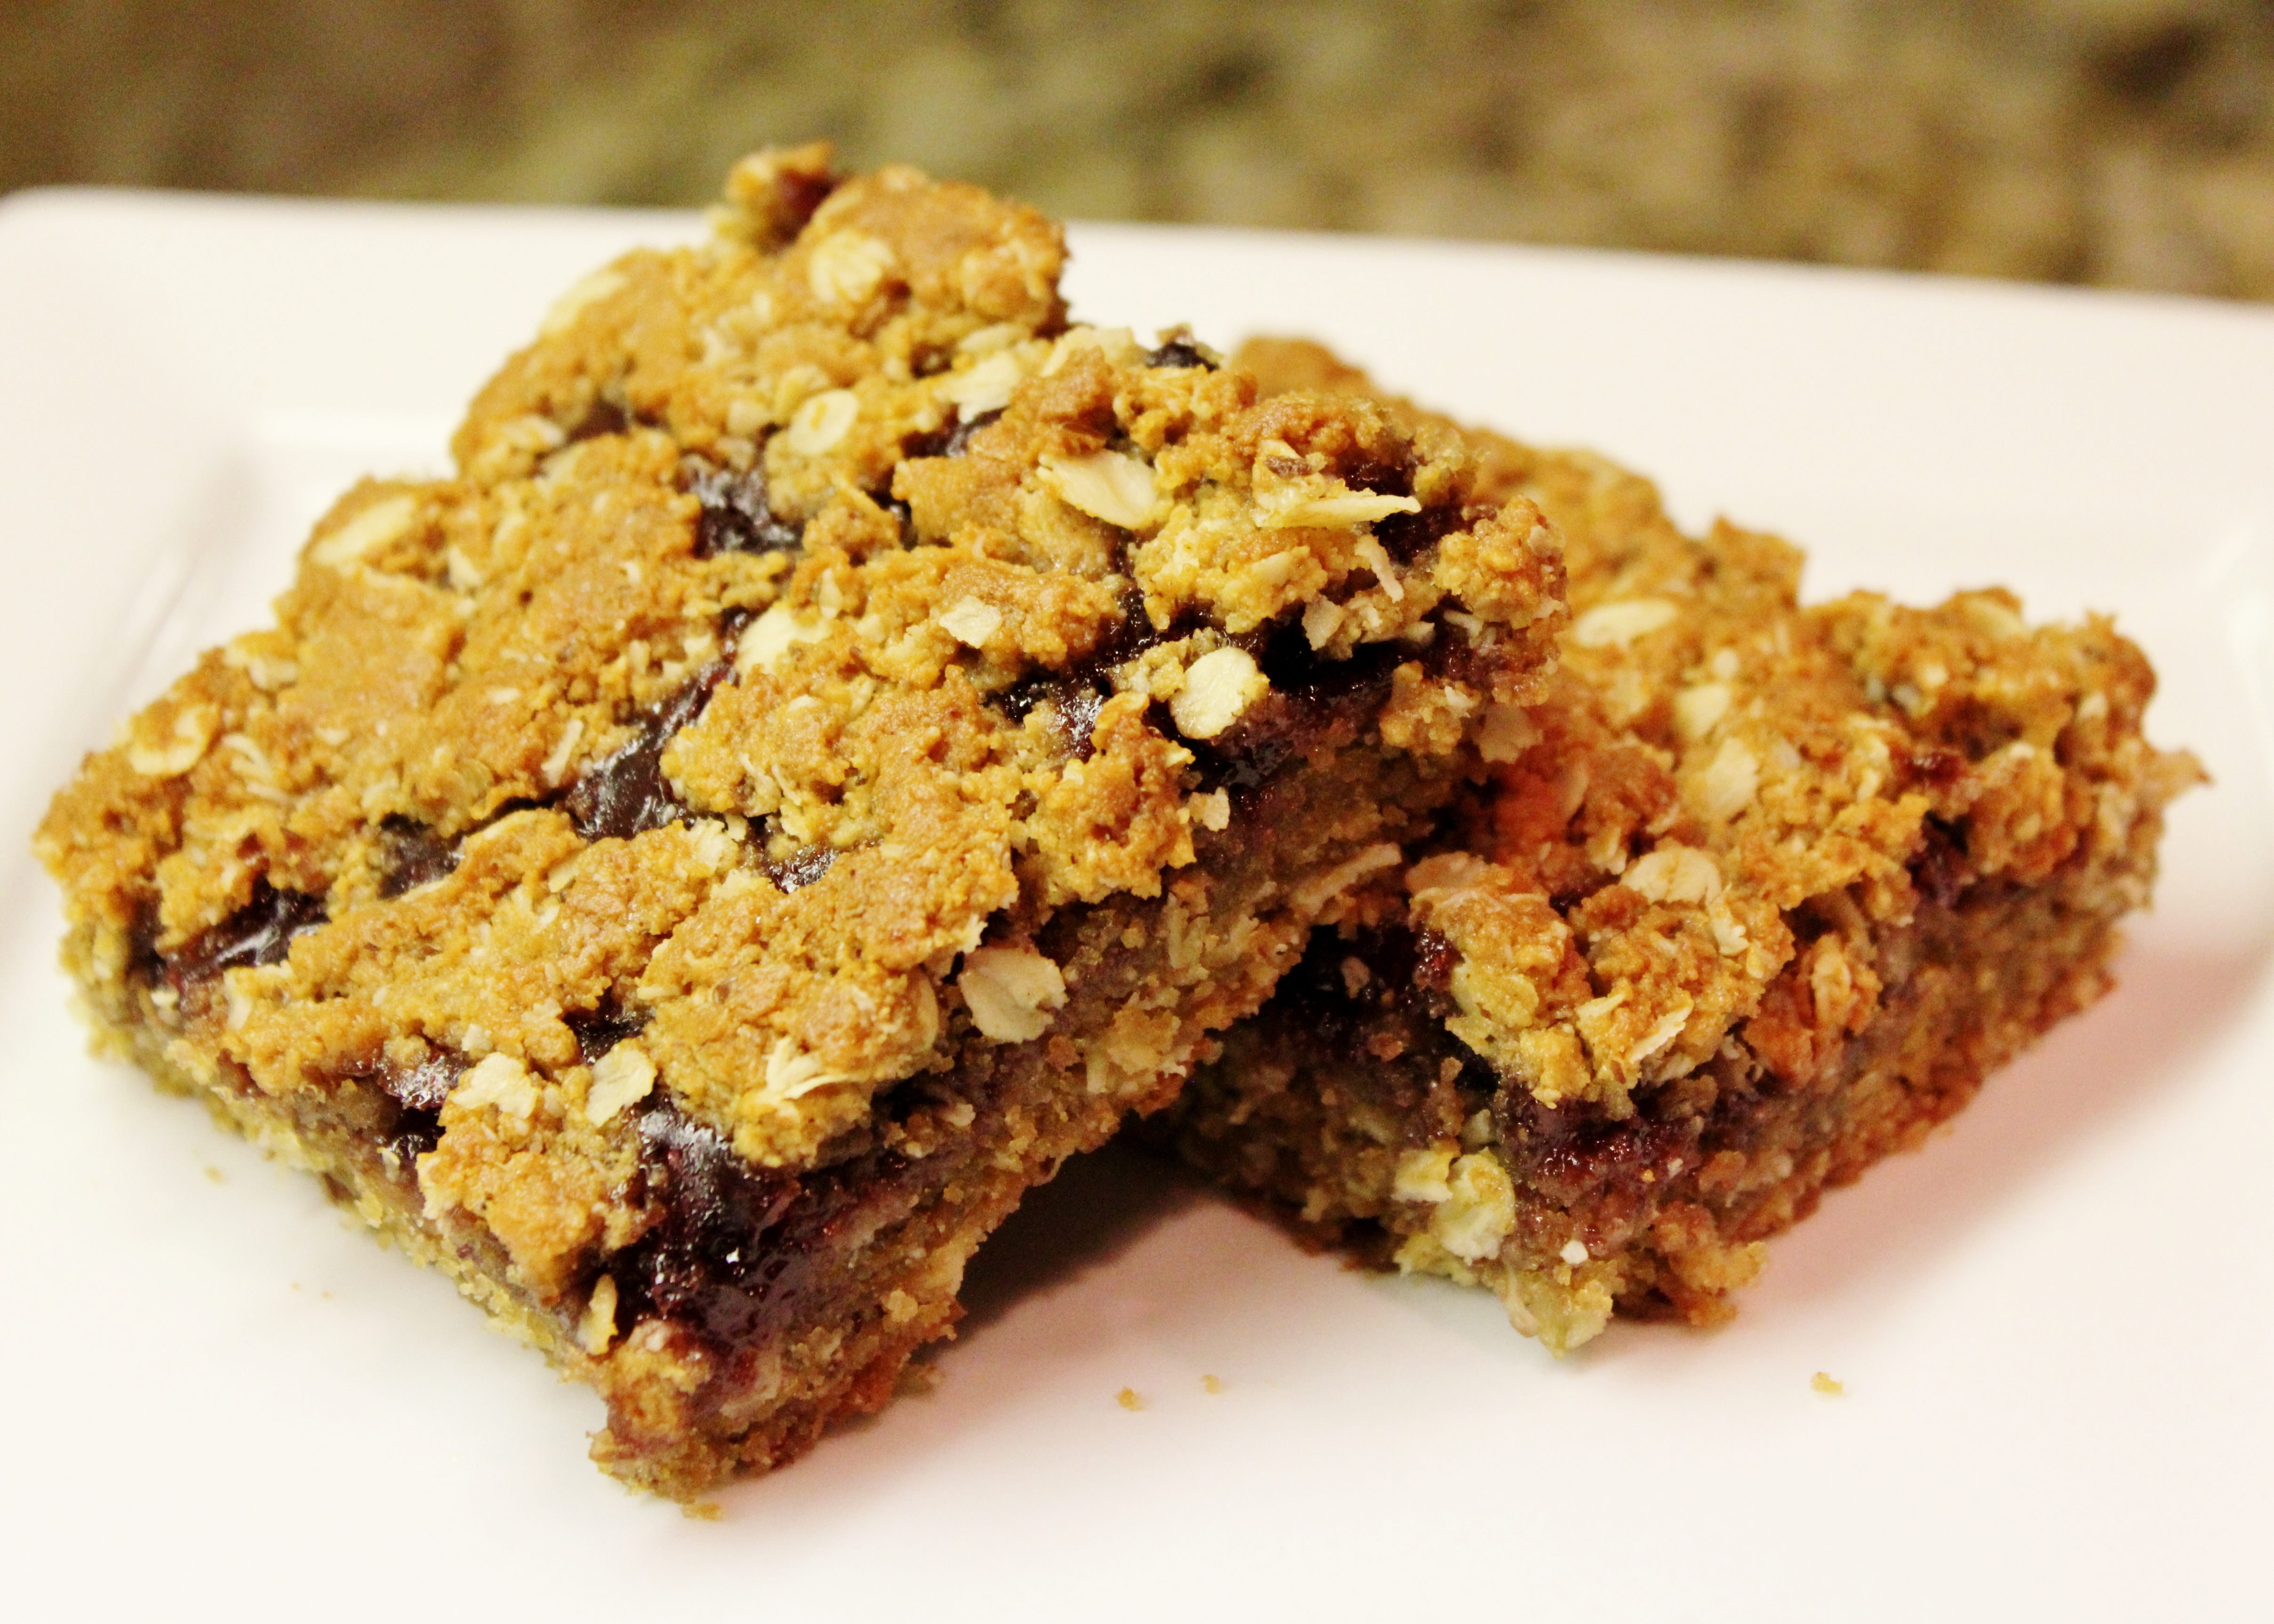 Picture of Gluten Free Peanut Butter and Jelly Bars